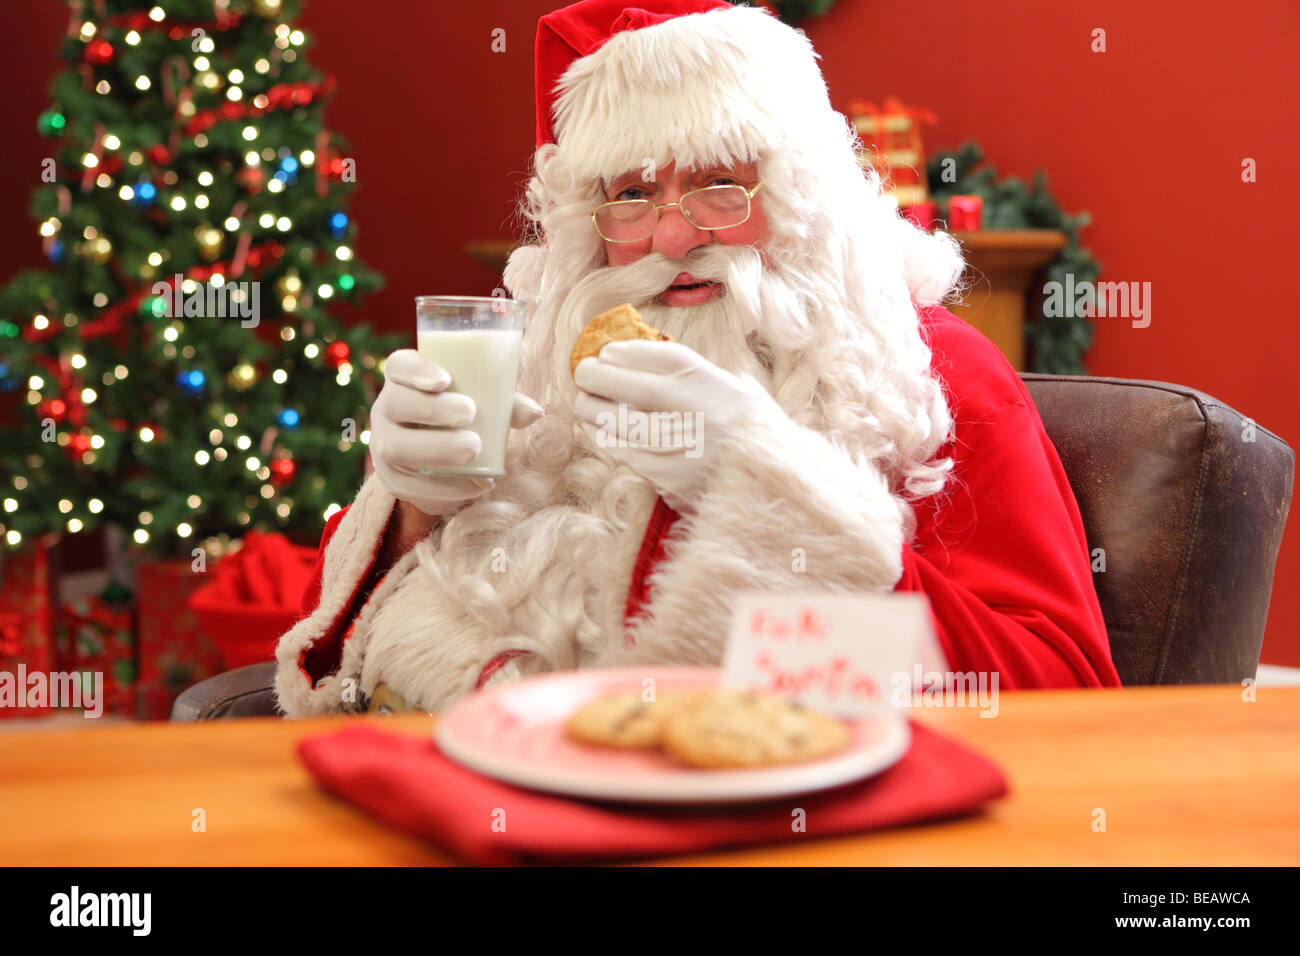 Santa Claus Eating Cookies With Glass Of Milk Stock Photo 26055018